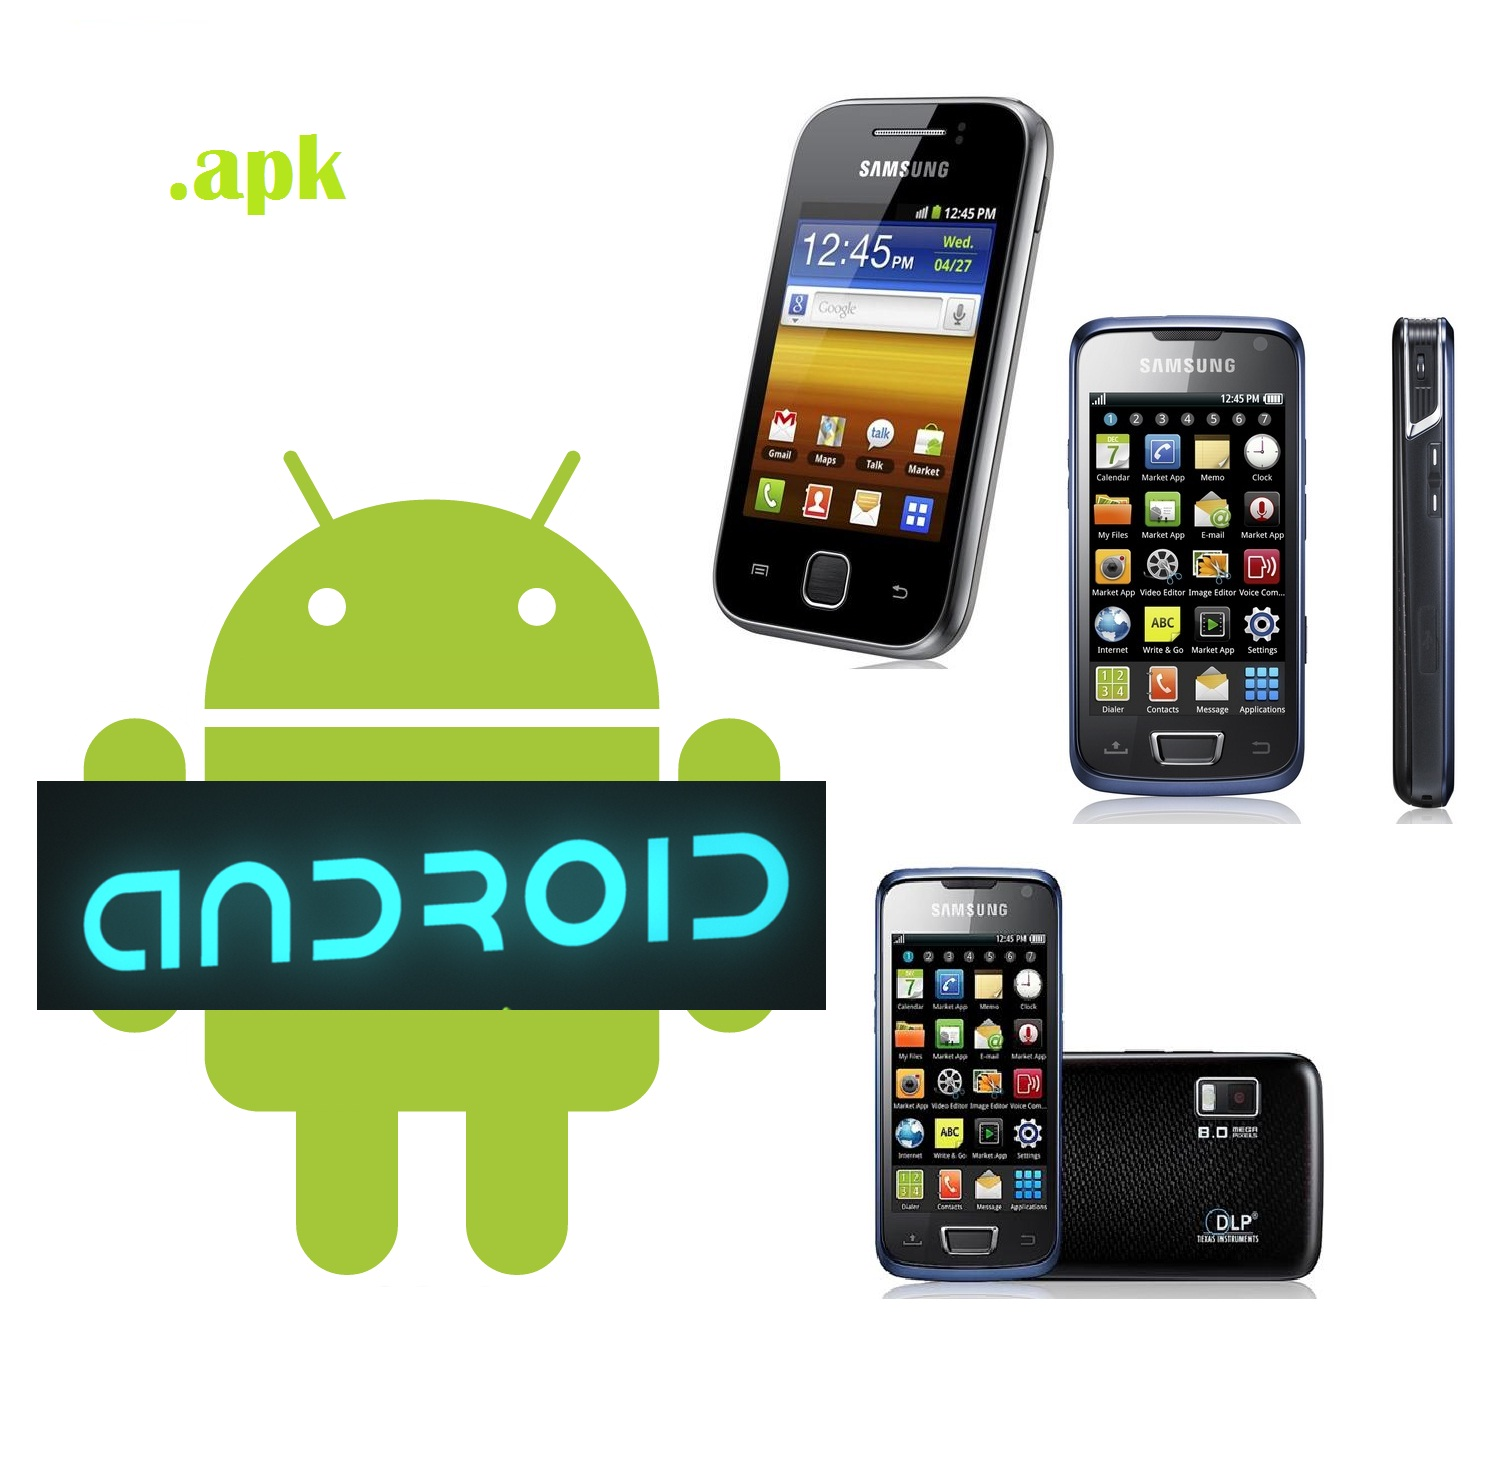 Download Game dan Aplikasi Android .apk  NR04